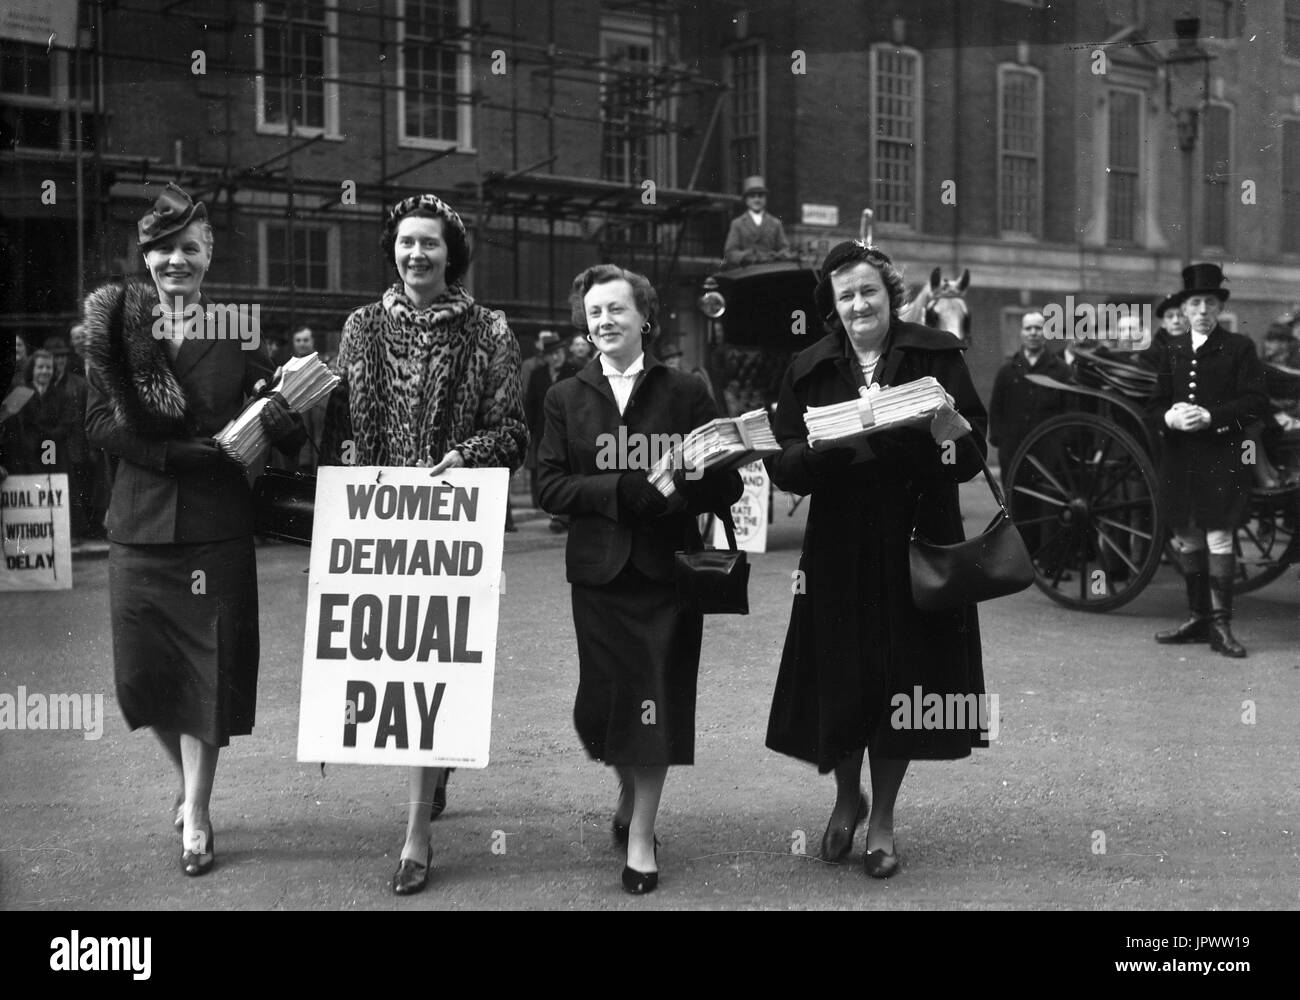 Women MPs delivering a a petition of 80,000 signatures supporting equal pay for women to the House of Commons in March 1954. Left to right, Dr Edith Summerskill MP for Fulham West, Patricia Ford ,Barbara Castle (Blackburn) and Irene Ward (Tynemouth). - Stock Image